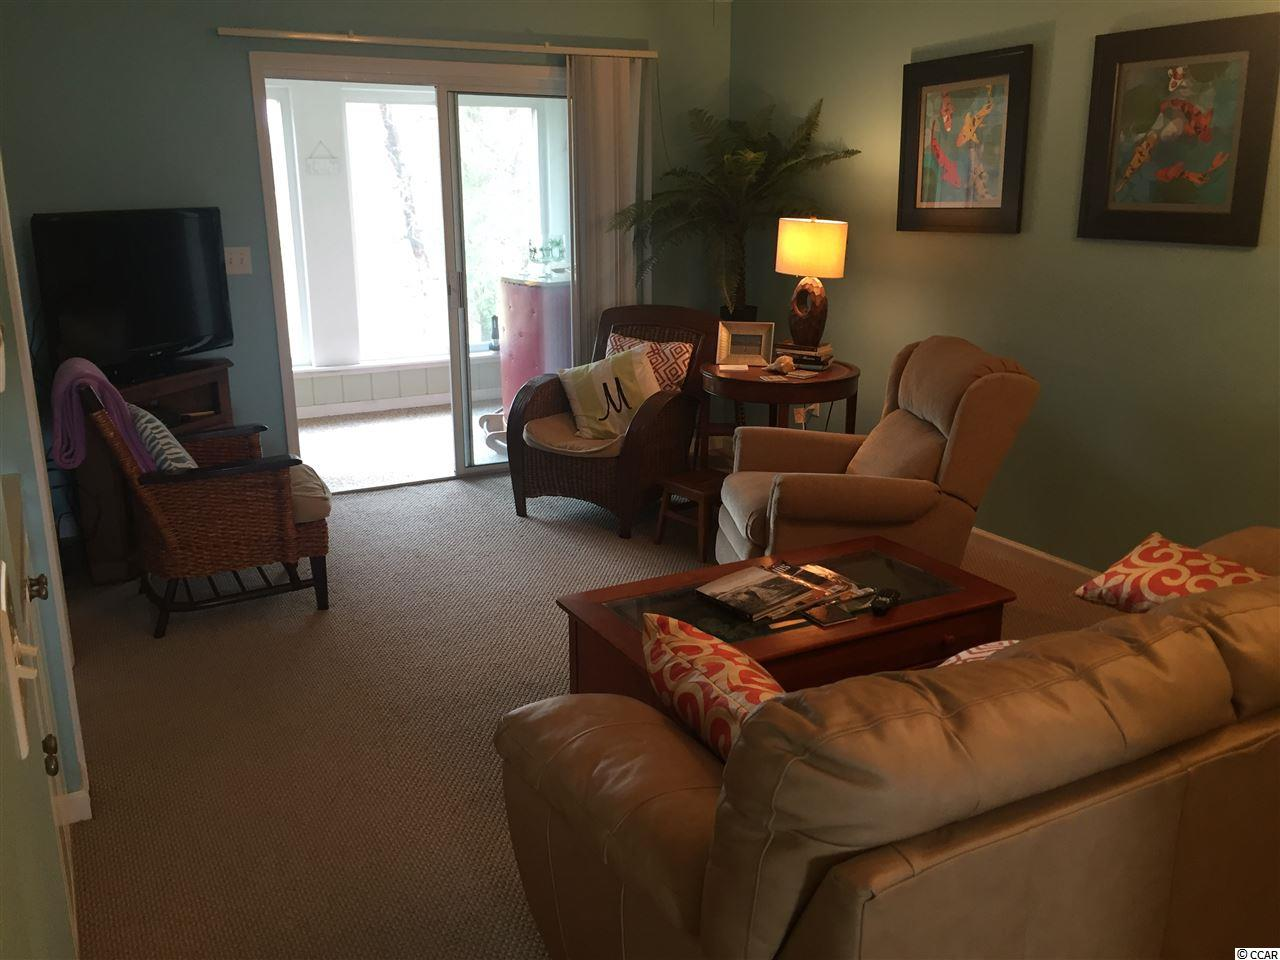 Spinnaker Bay condo for sale in Little River, SC